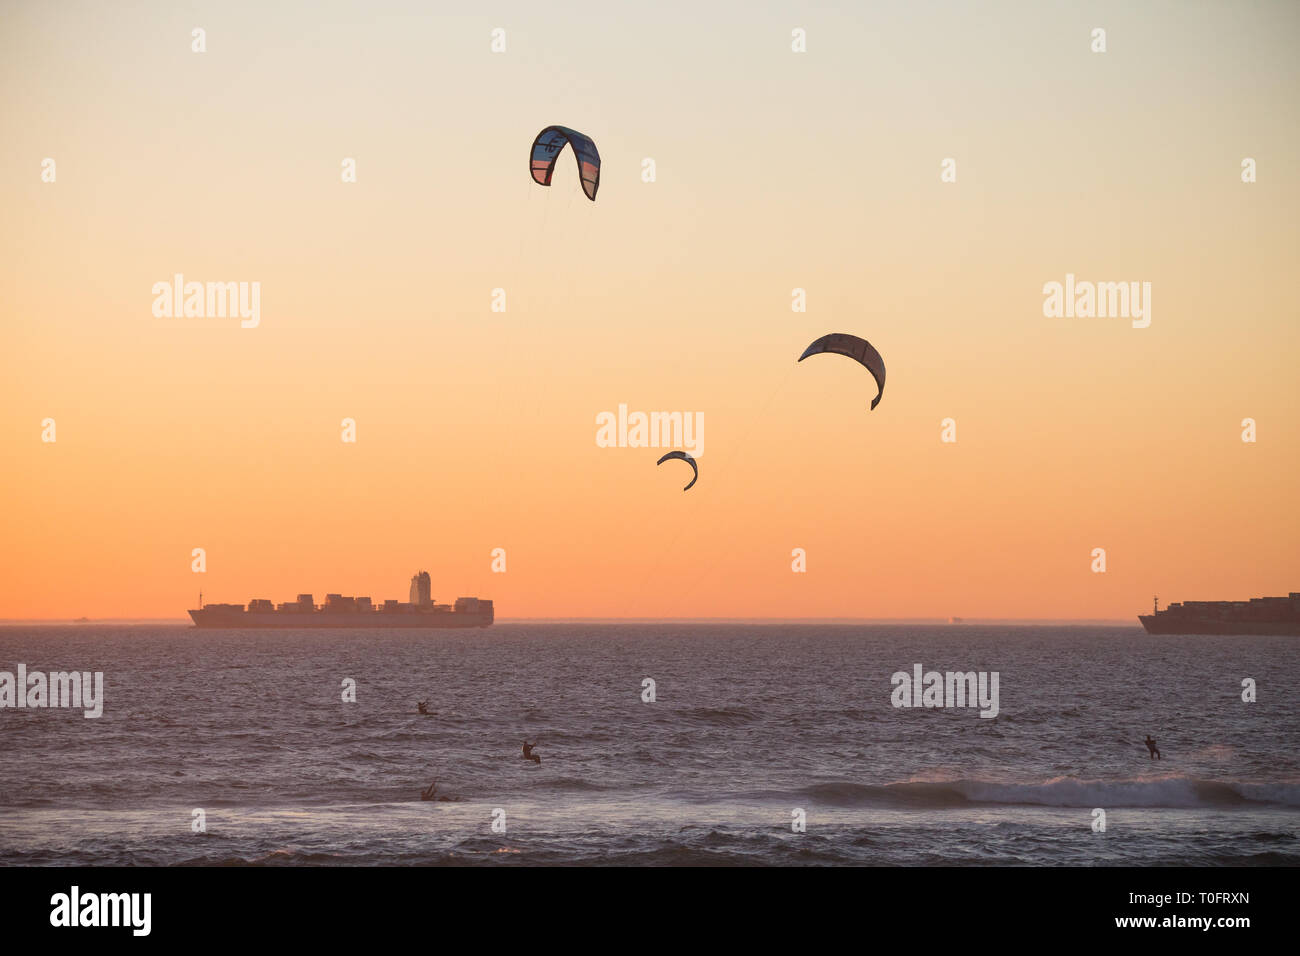 kitesurfers or kiteboarders silhouettes at sunset on the ocean with two tankers or ships in the background at Bloubergstrand, Cape Town, South Africa - Stock Image